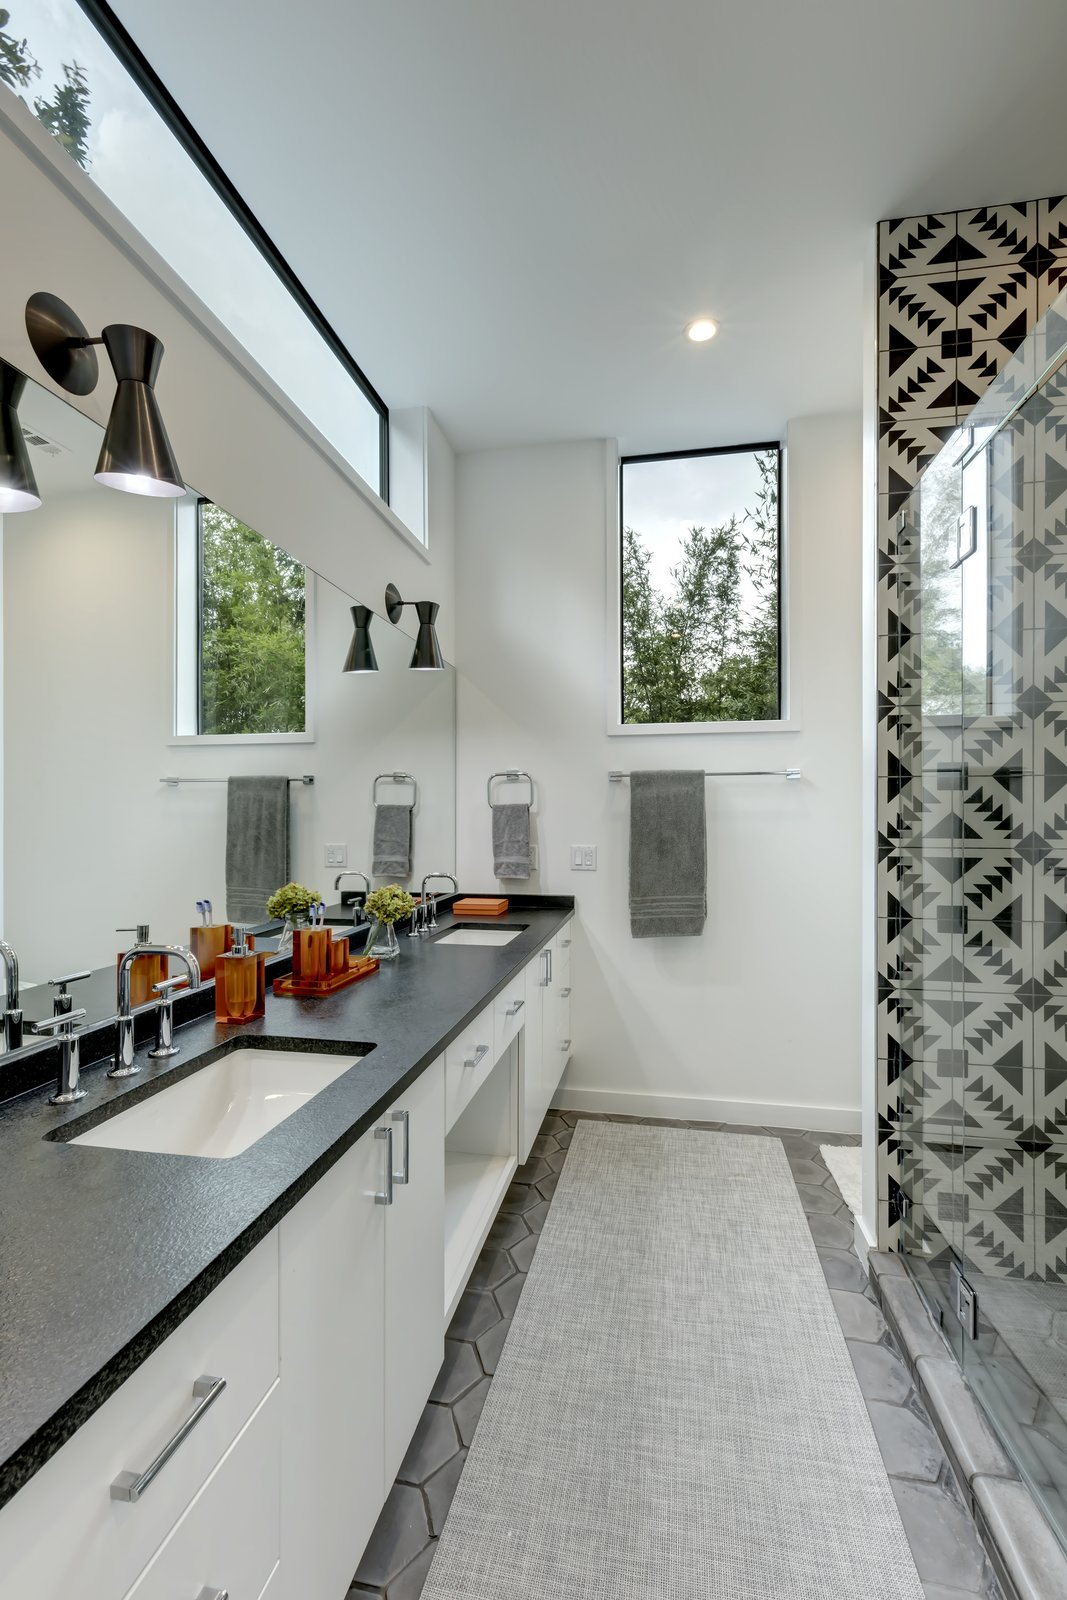 Bath, Ceramic Tile, Engineered Quartz, Enclosed, Recessed, Drop In, and One Piece Add/Subtract House by Matt Fajkus Architecture | Photo by Charles Davis Smith  Best Bath One Piece Engineered Quartz Photos from Add/Subtract House